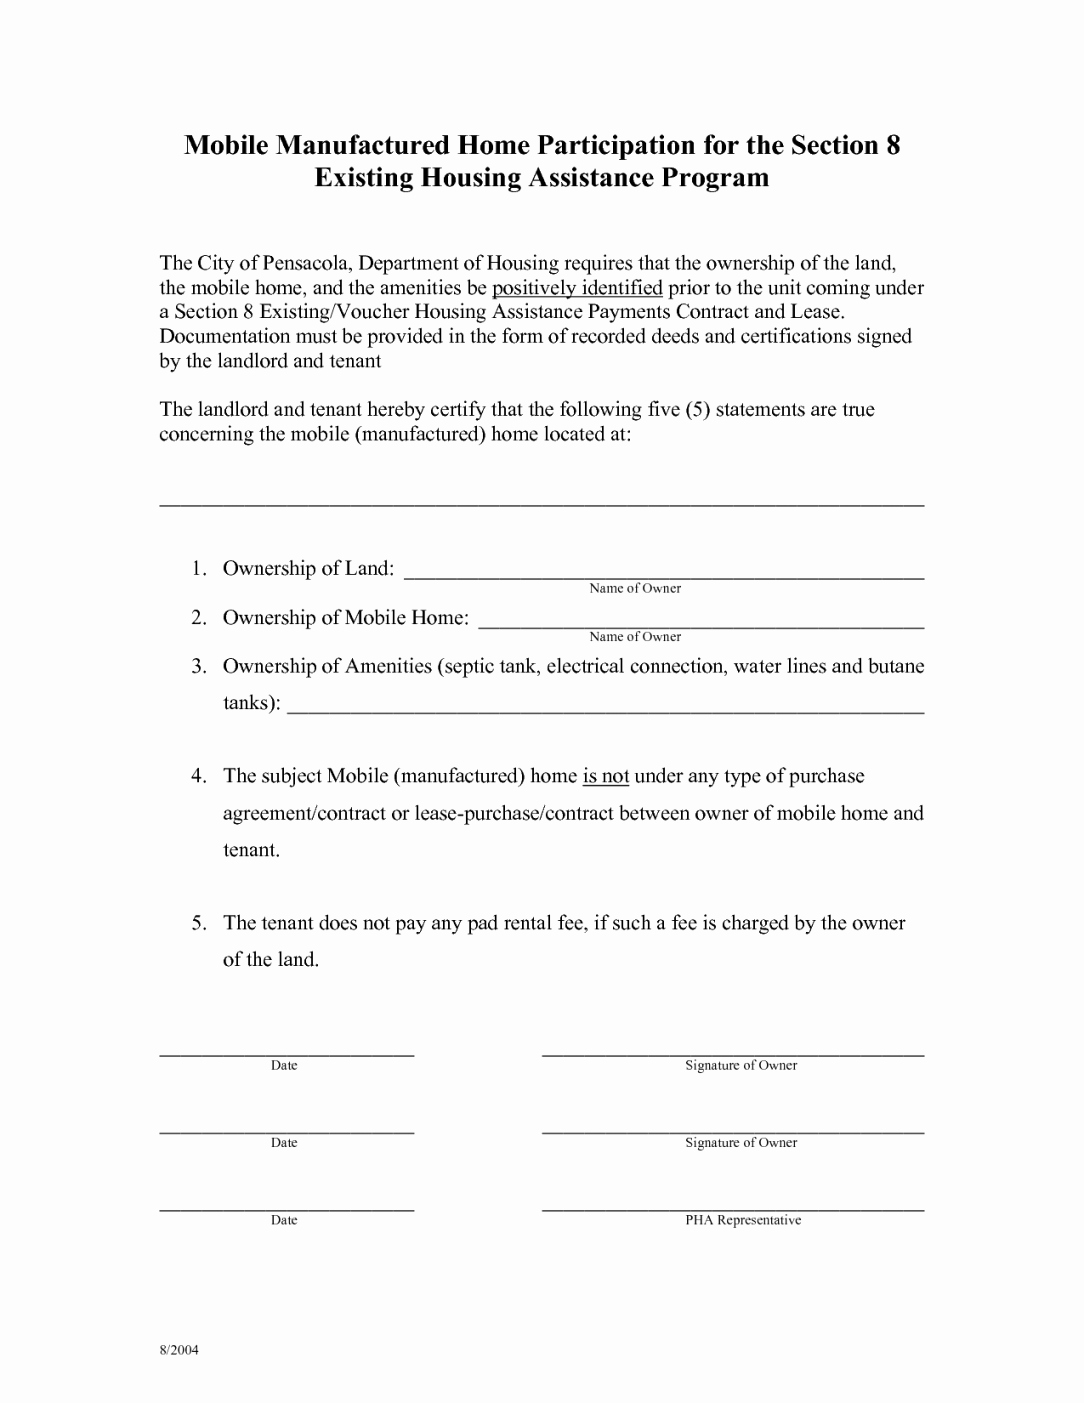 Simple Home Purchase Agreement Lovely Mobile Home Purchase Agreement